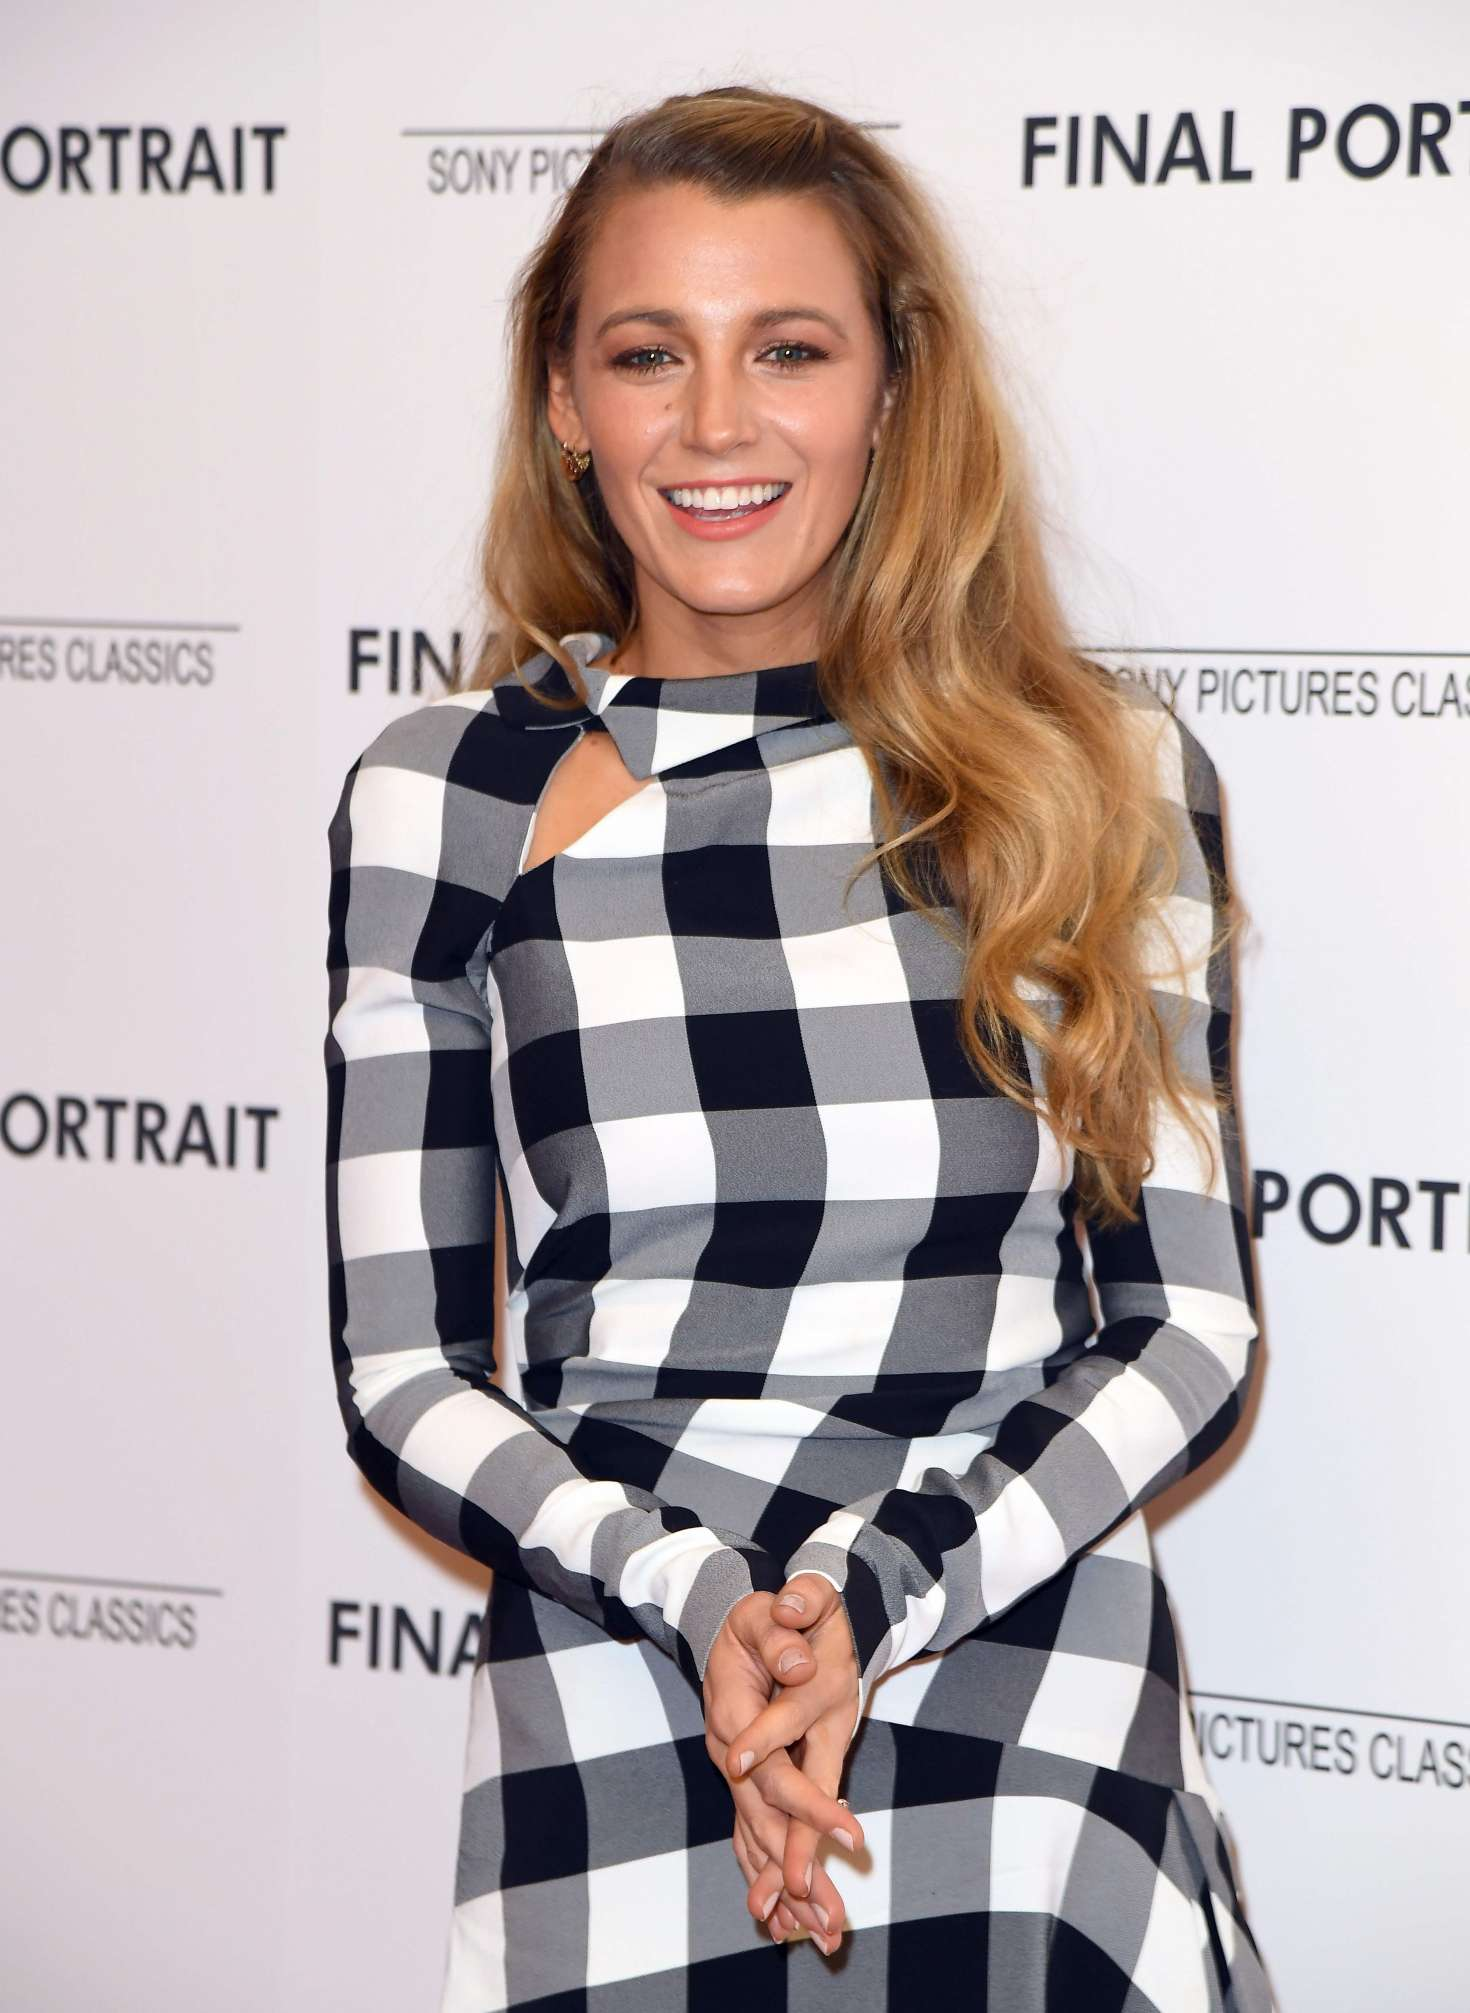 Blake Lively - 'Final Portrait' Screening in New York City